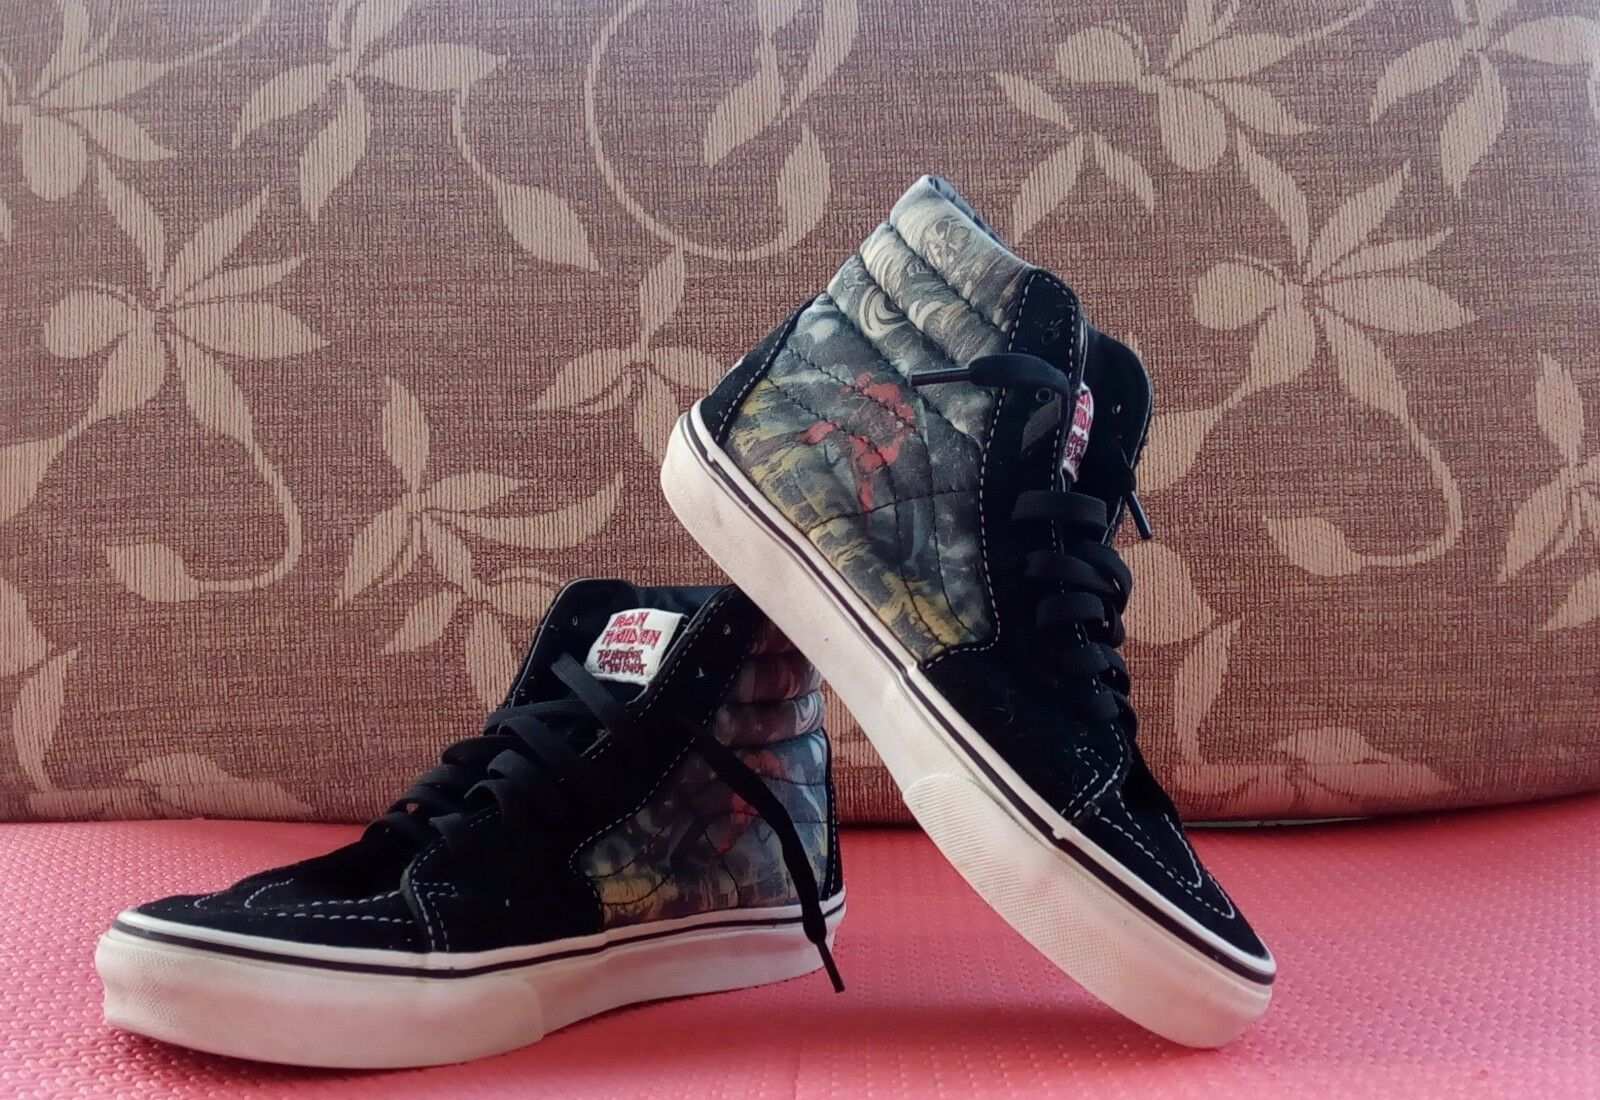 VANS IRON MAIDEN SKATE HI-TOP ORG number of the beast Uomo US 5 Donna US 6.5